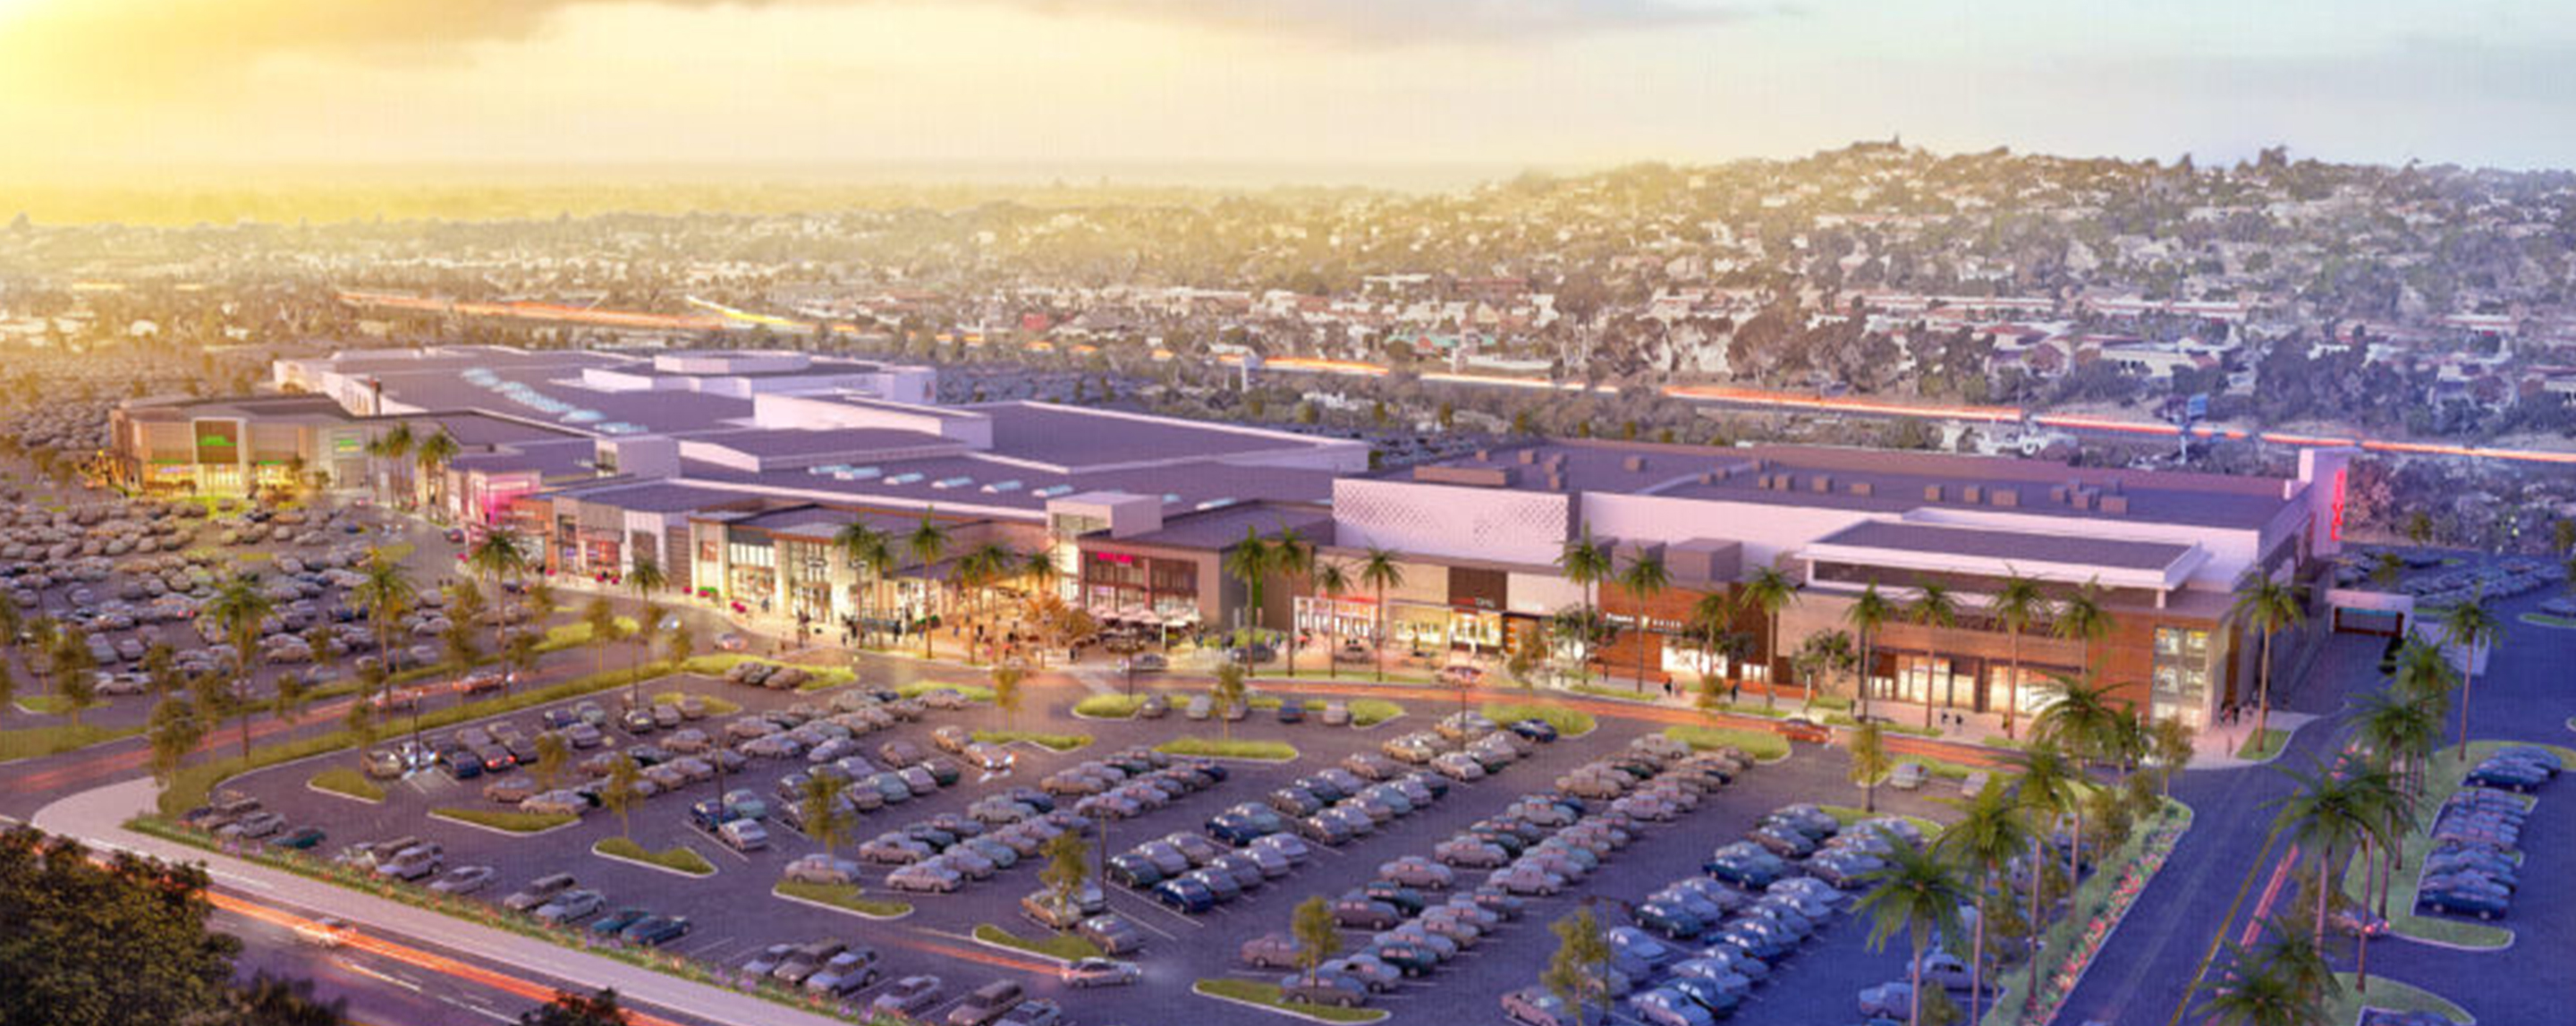 Overhead rendering of The Shoppes at Carlsbad